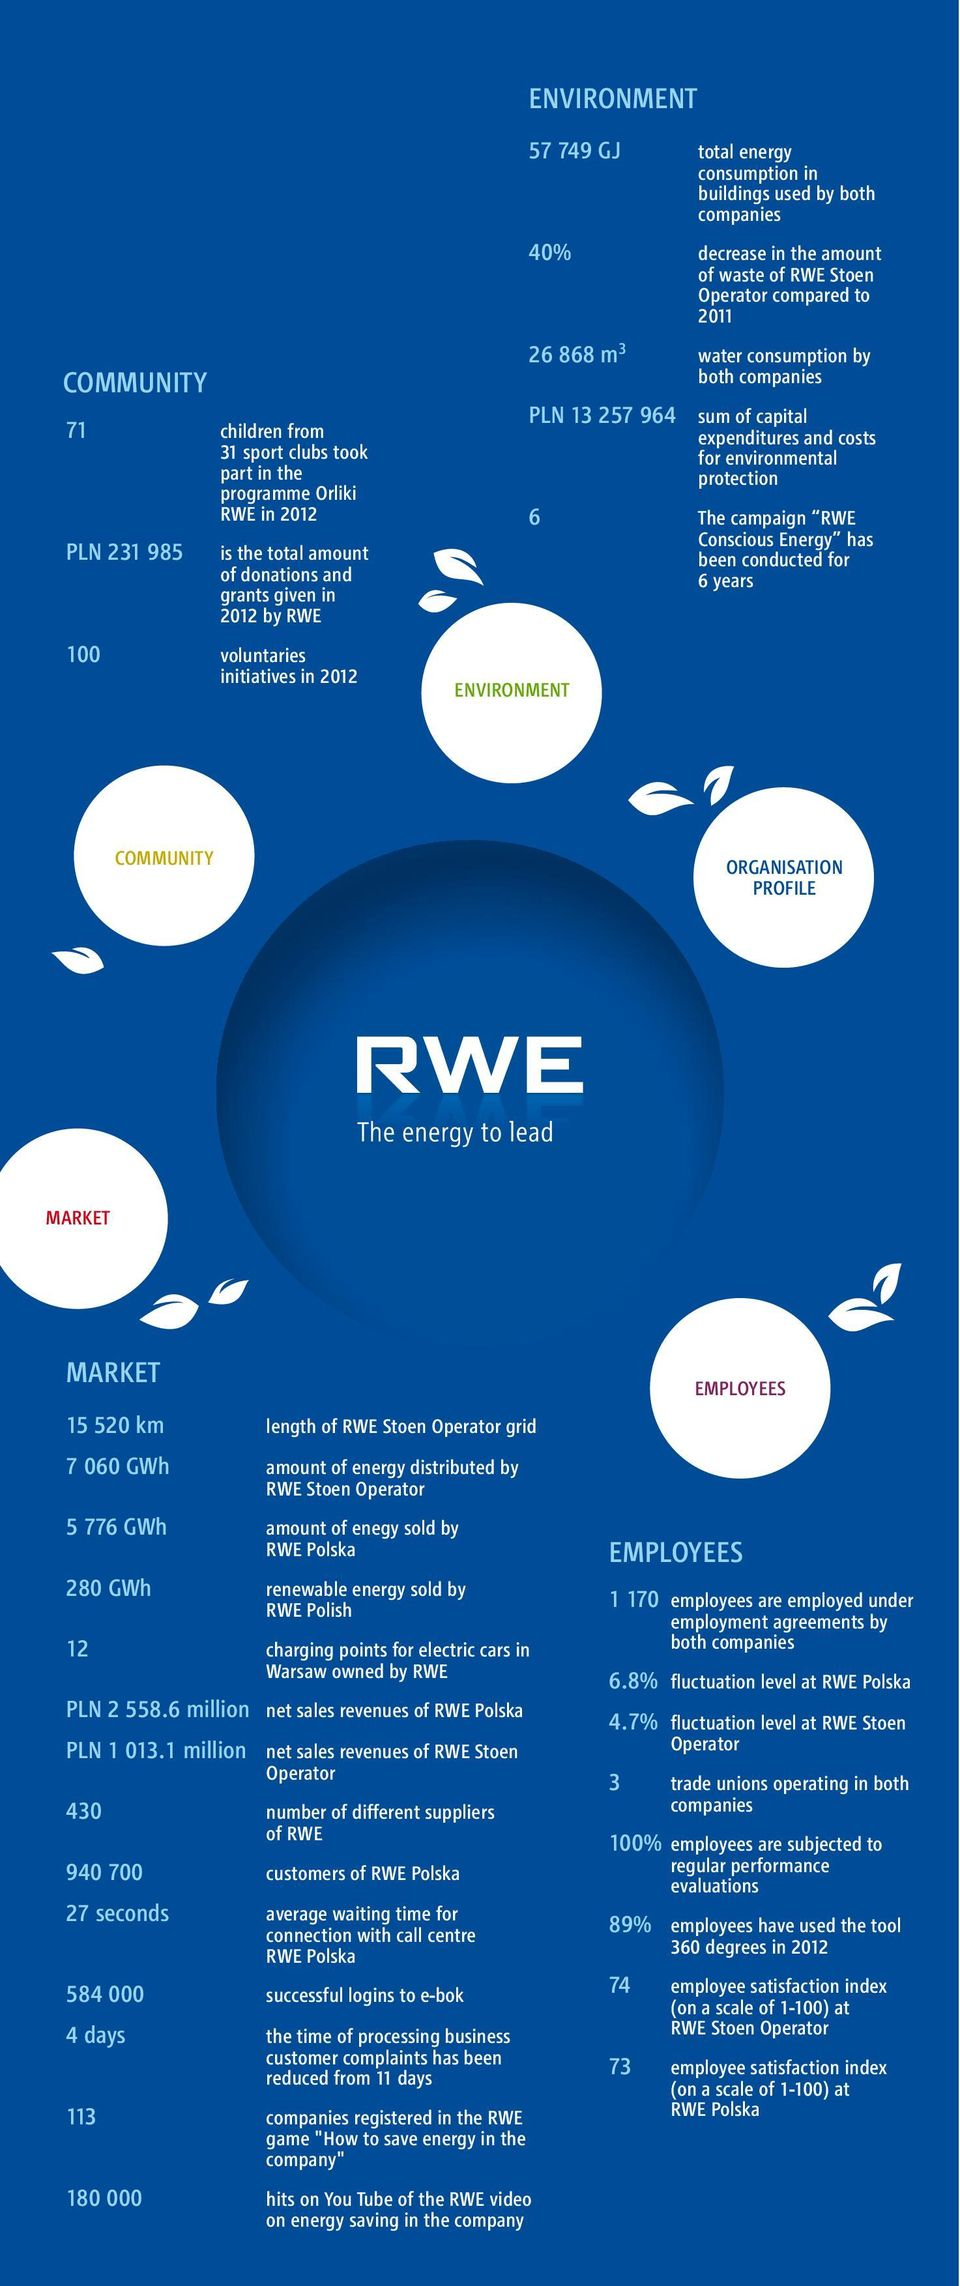 to 2011 water consumption by both companies sum of capital expenditures and costs for environmental protection The campaign RWE Conscious Energy has been conducted for 6 years COMMUNITY ORGANISATION